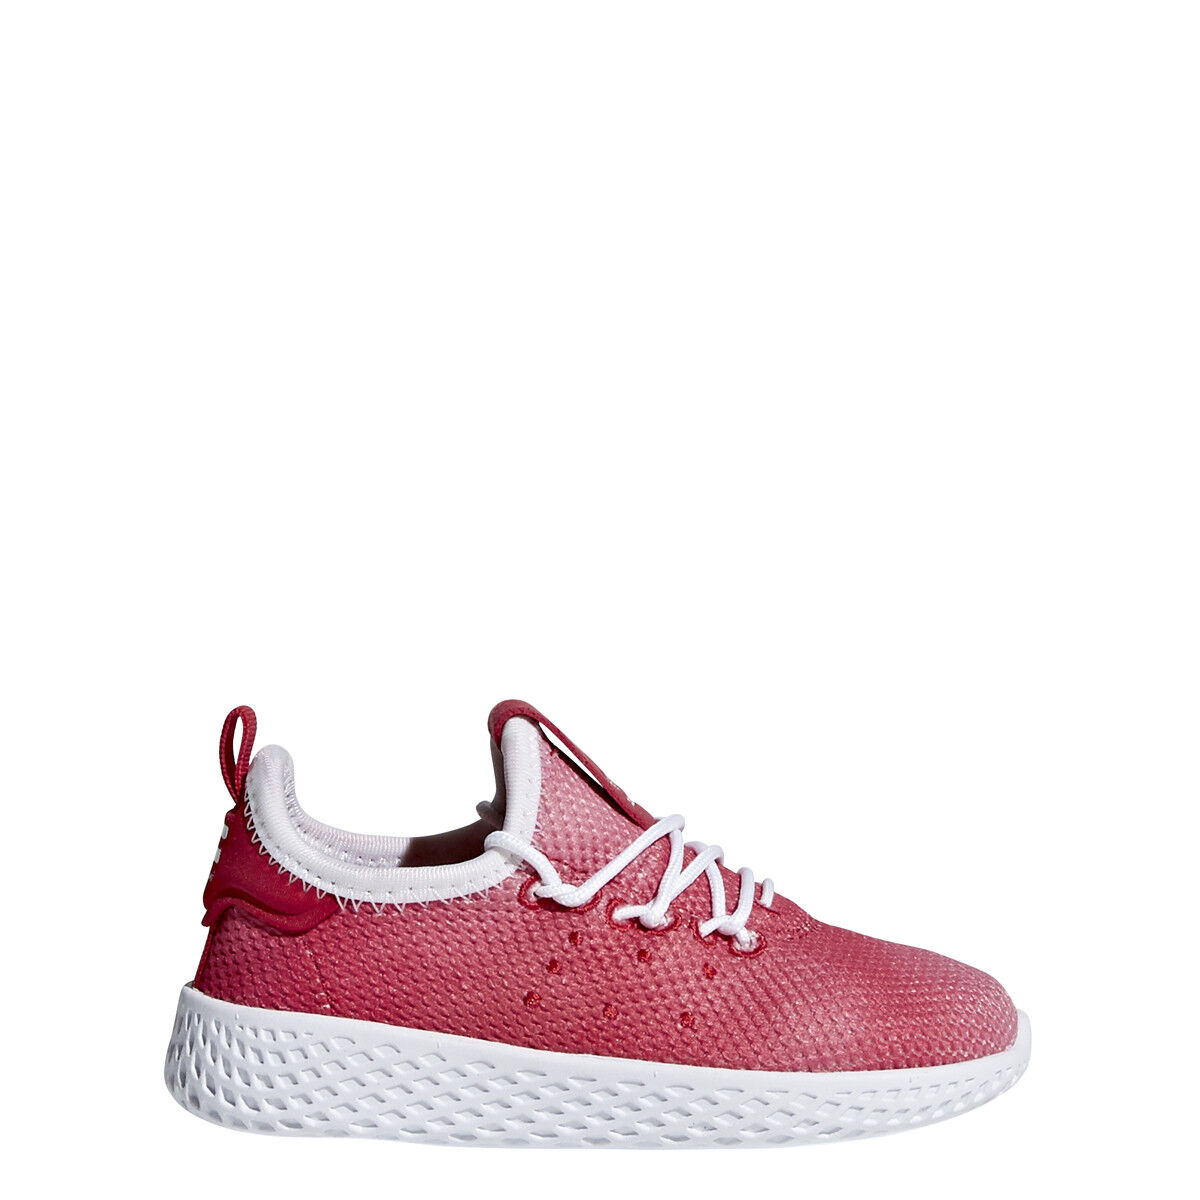 NEW ADIDAS TODDLER PW TENNIS HU SHOES [BB6829]  RED//WHITE